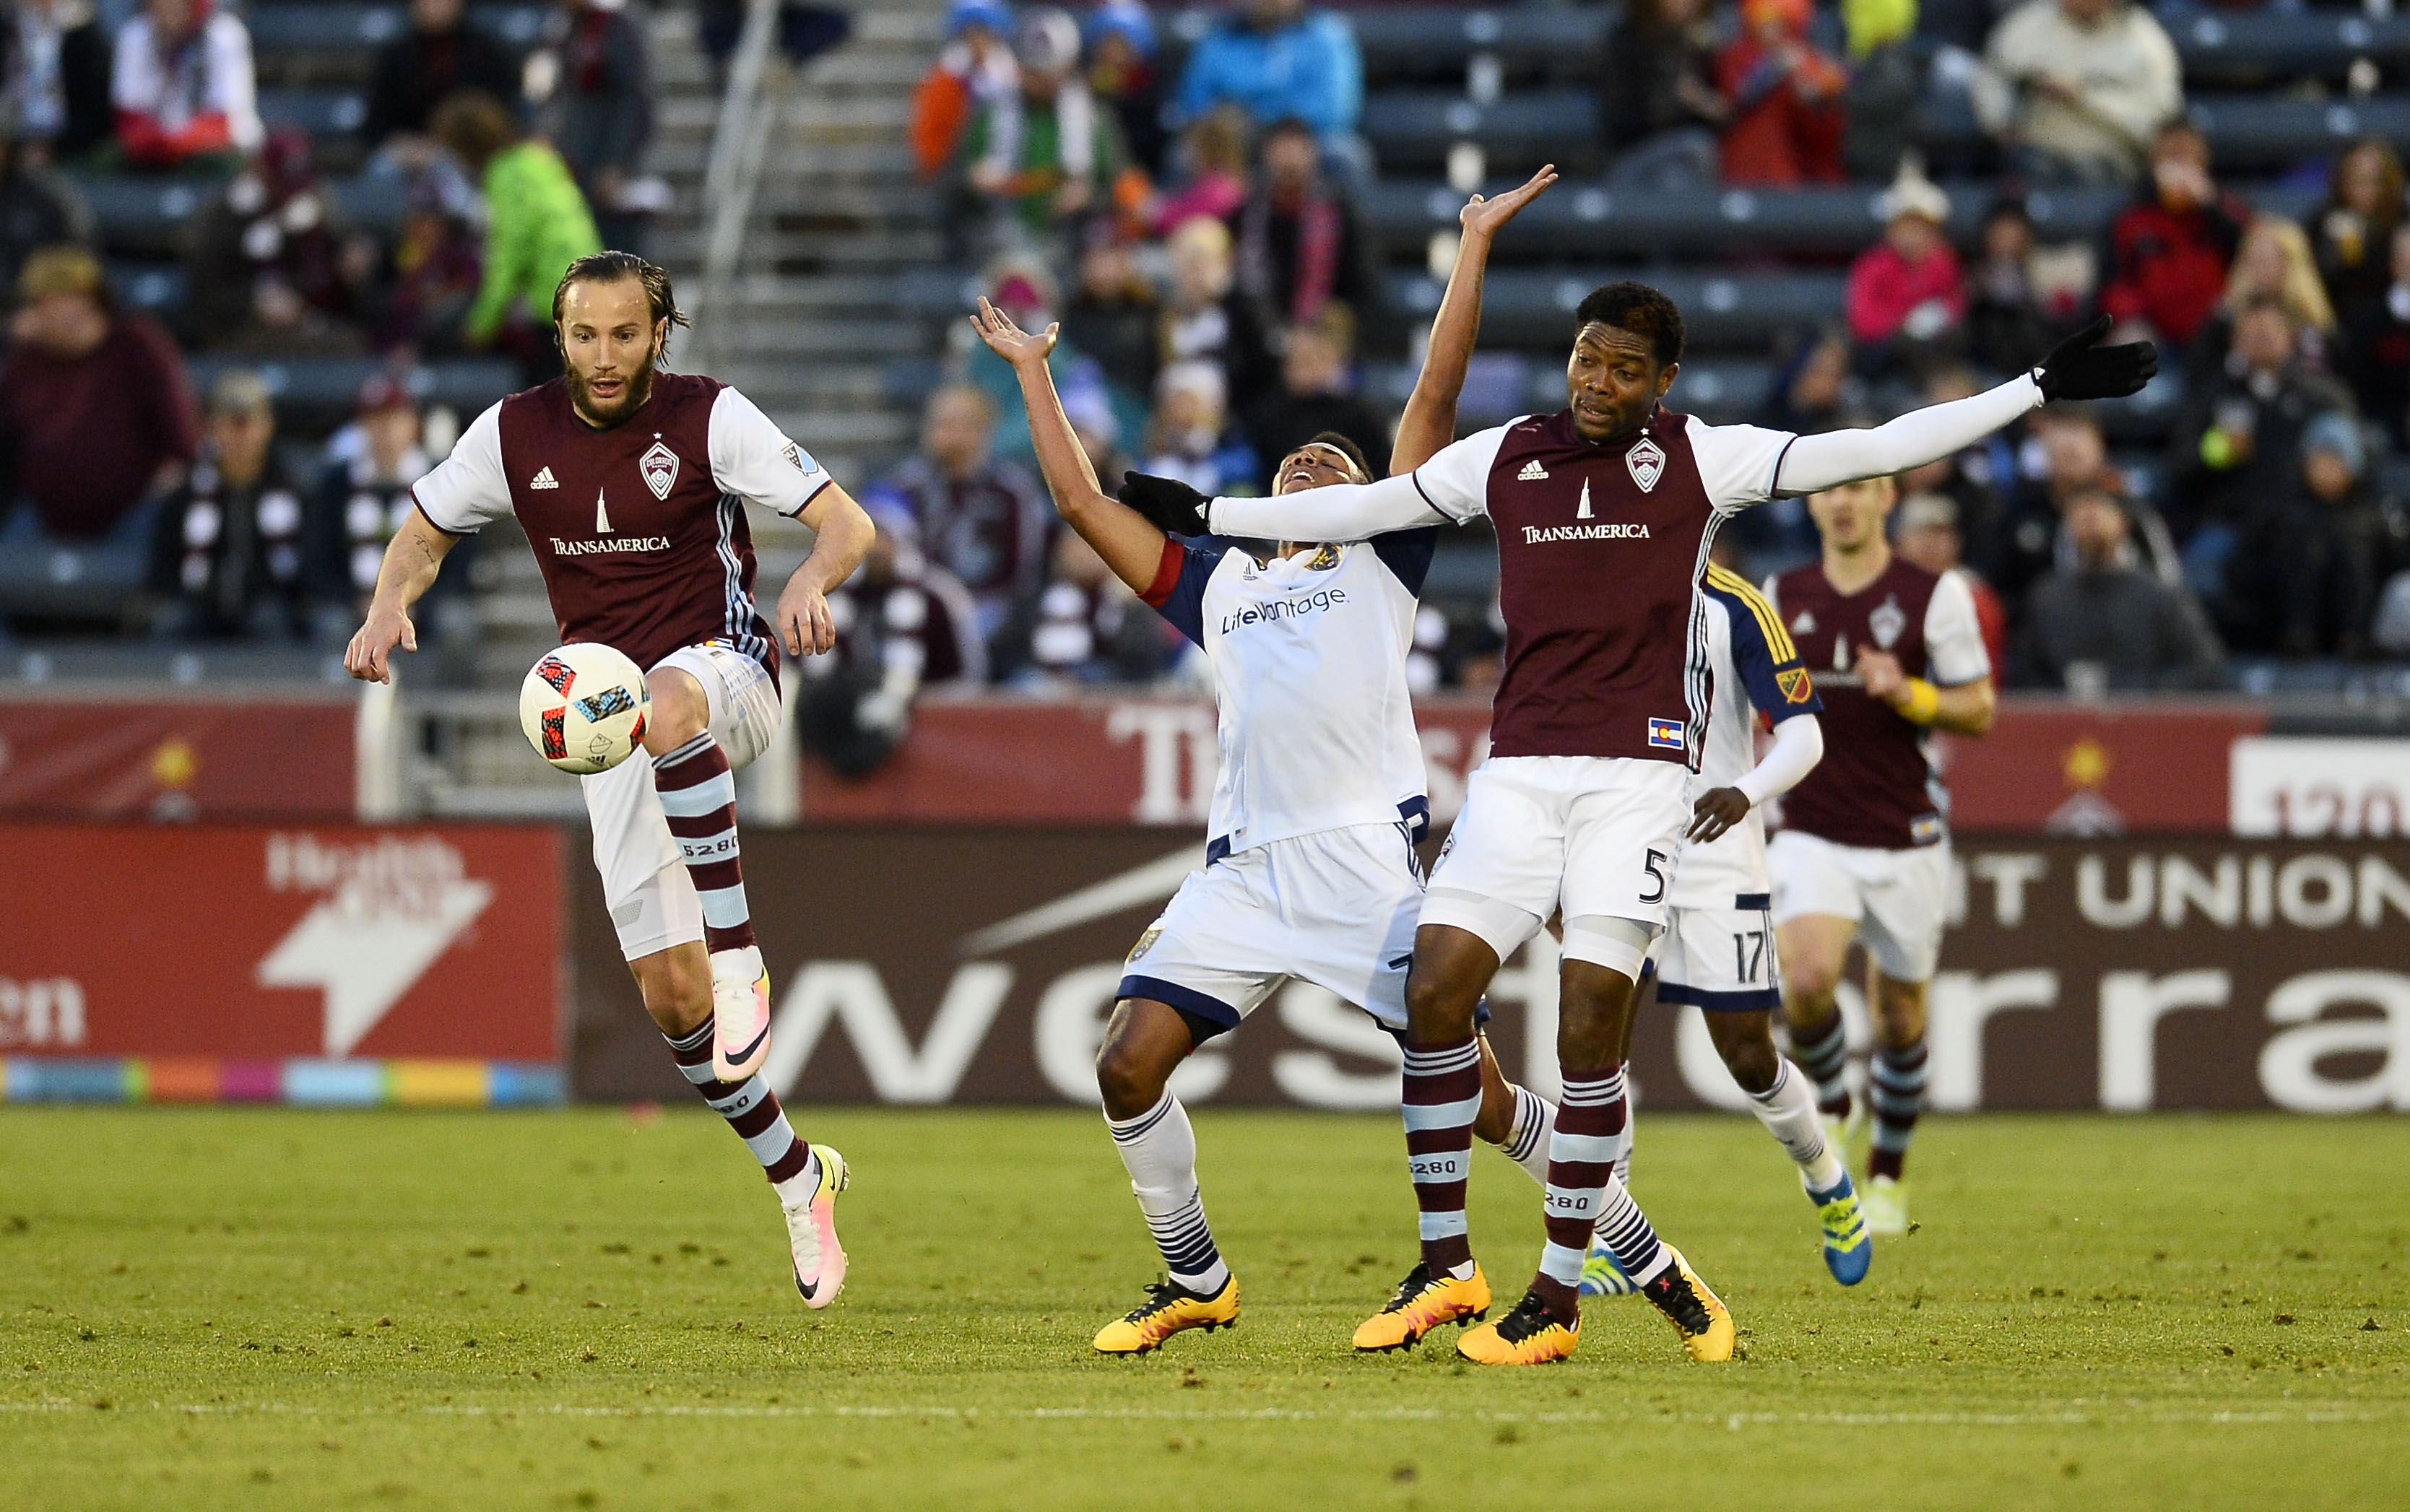 Williams wins the ball and gets it to Gashi.